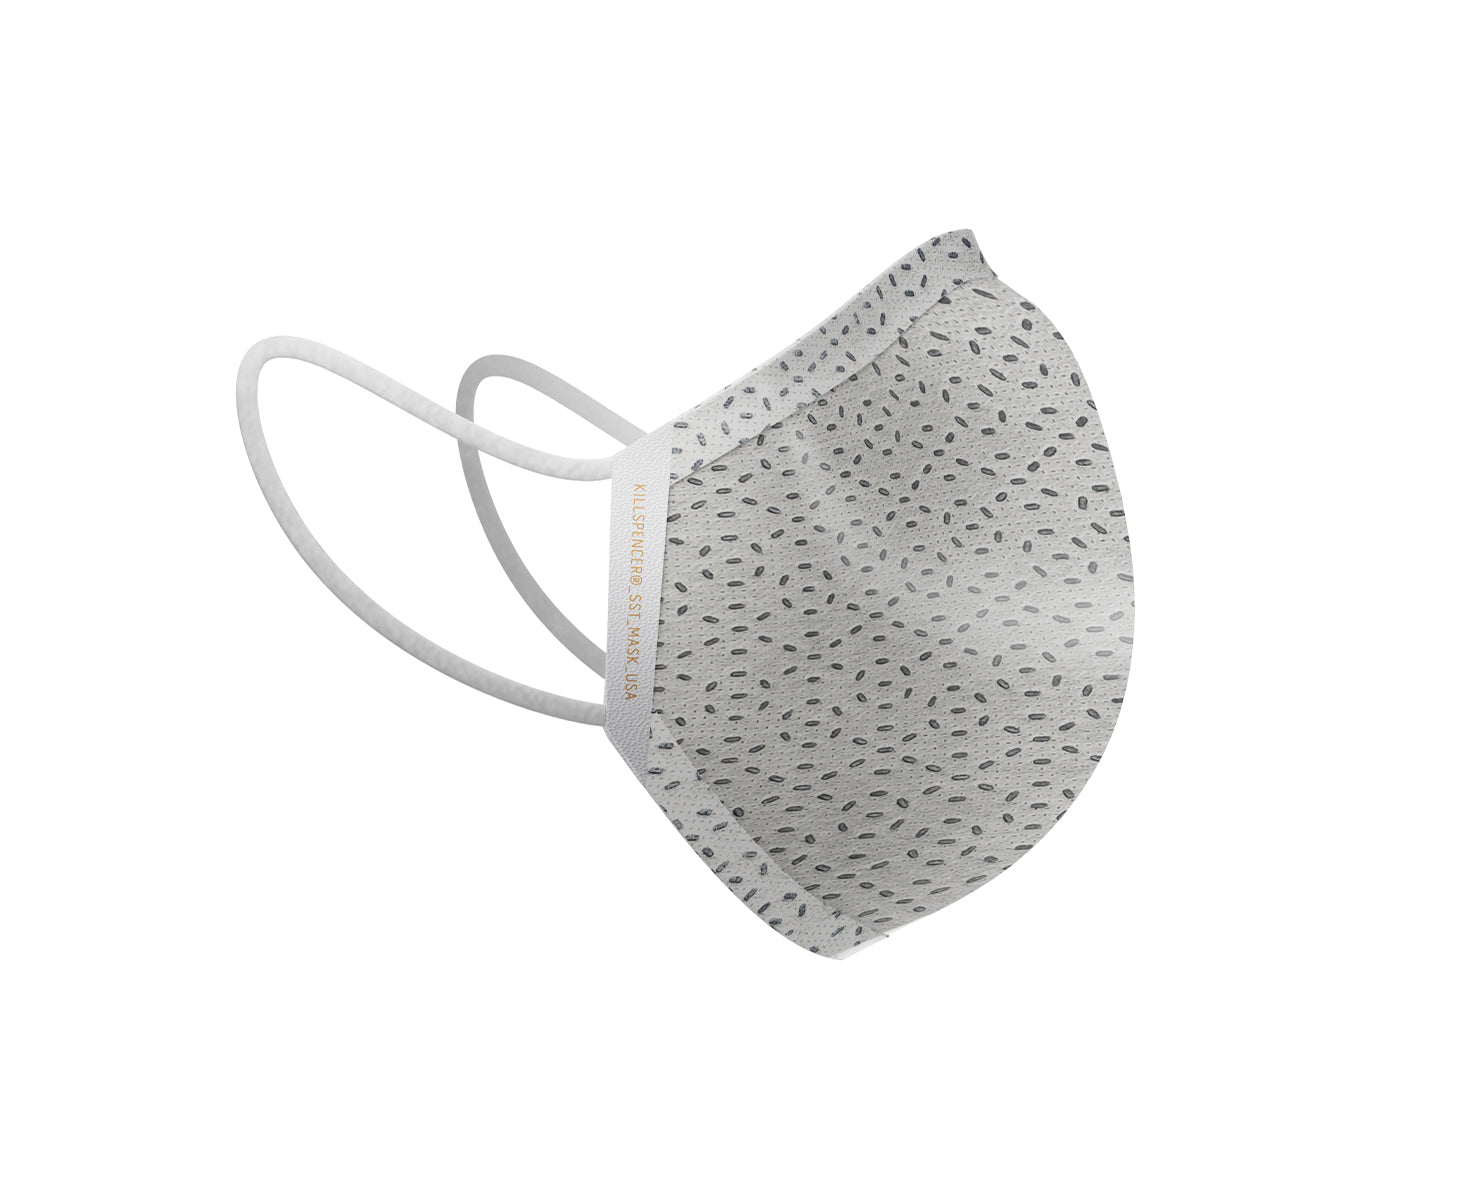 SST FACE MASK | KILLSPENCER® - Apollo Grey SST and White Leather